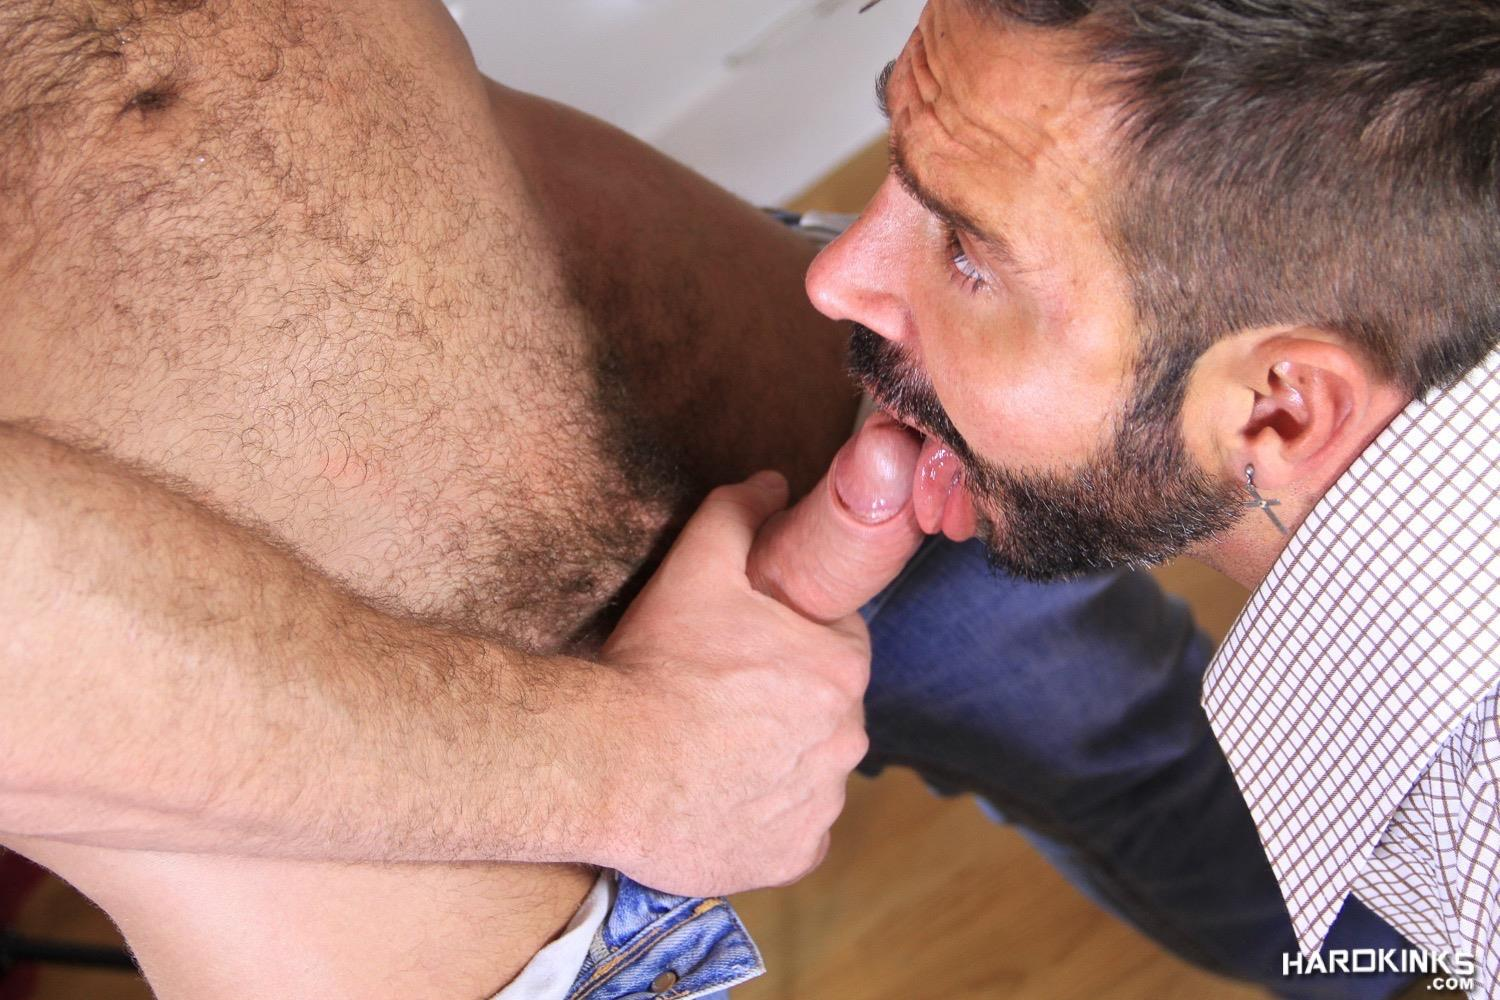 Hardkinks-Jessy-Ares-and-Martin-Mazza-Hairy-Alpha-Male-Amateur-Gay-Porn-26 Hairy Muscle Alpha Male Dominates His Coworker